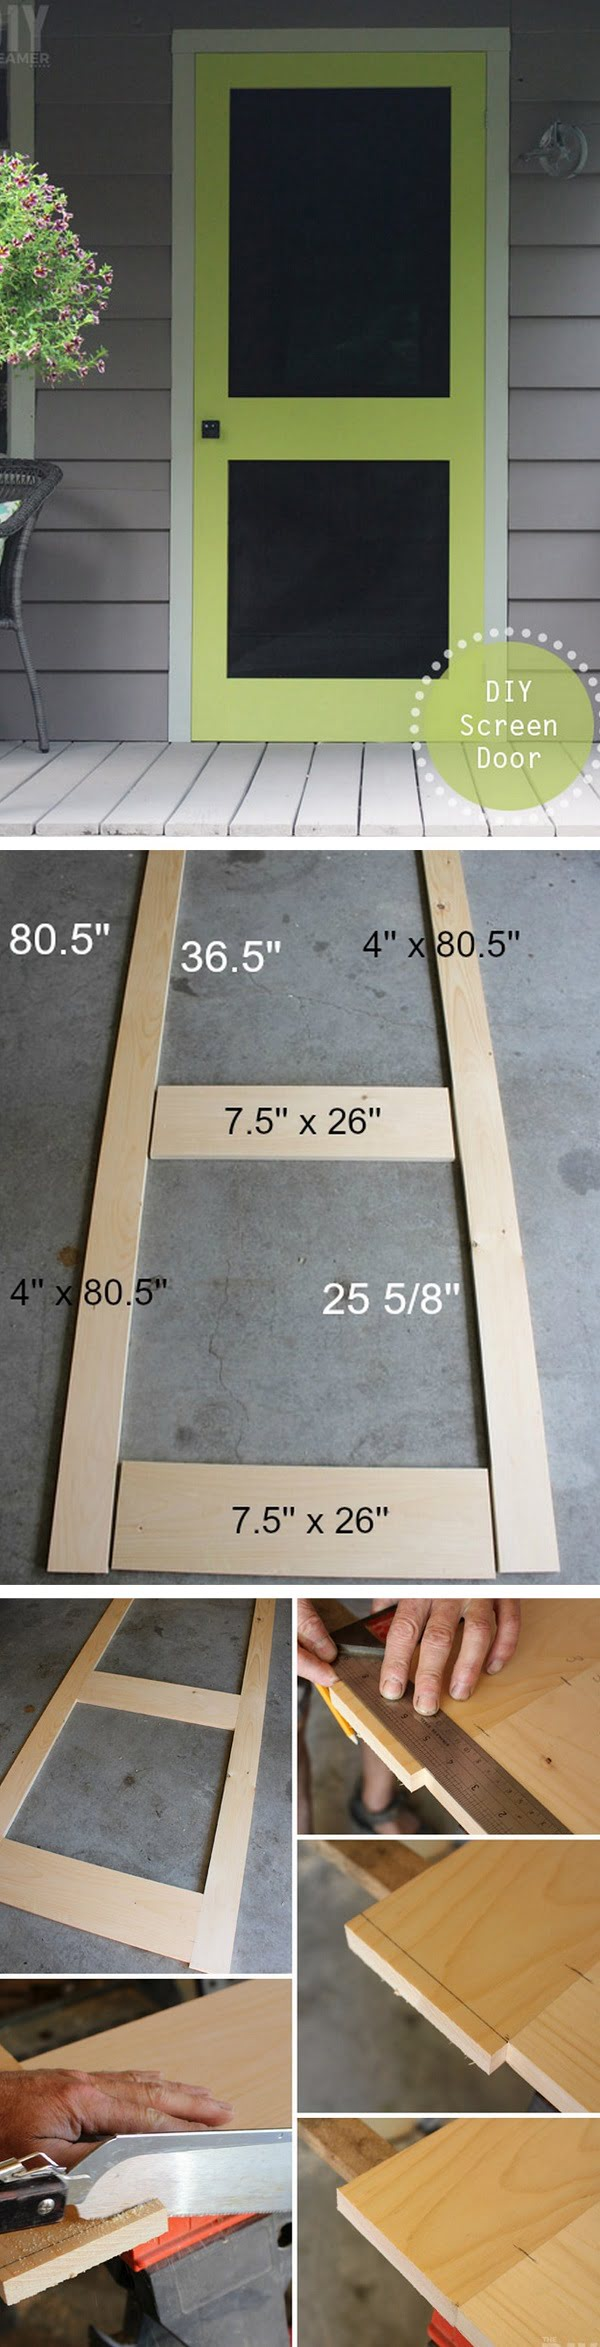 How to make DIY screen door